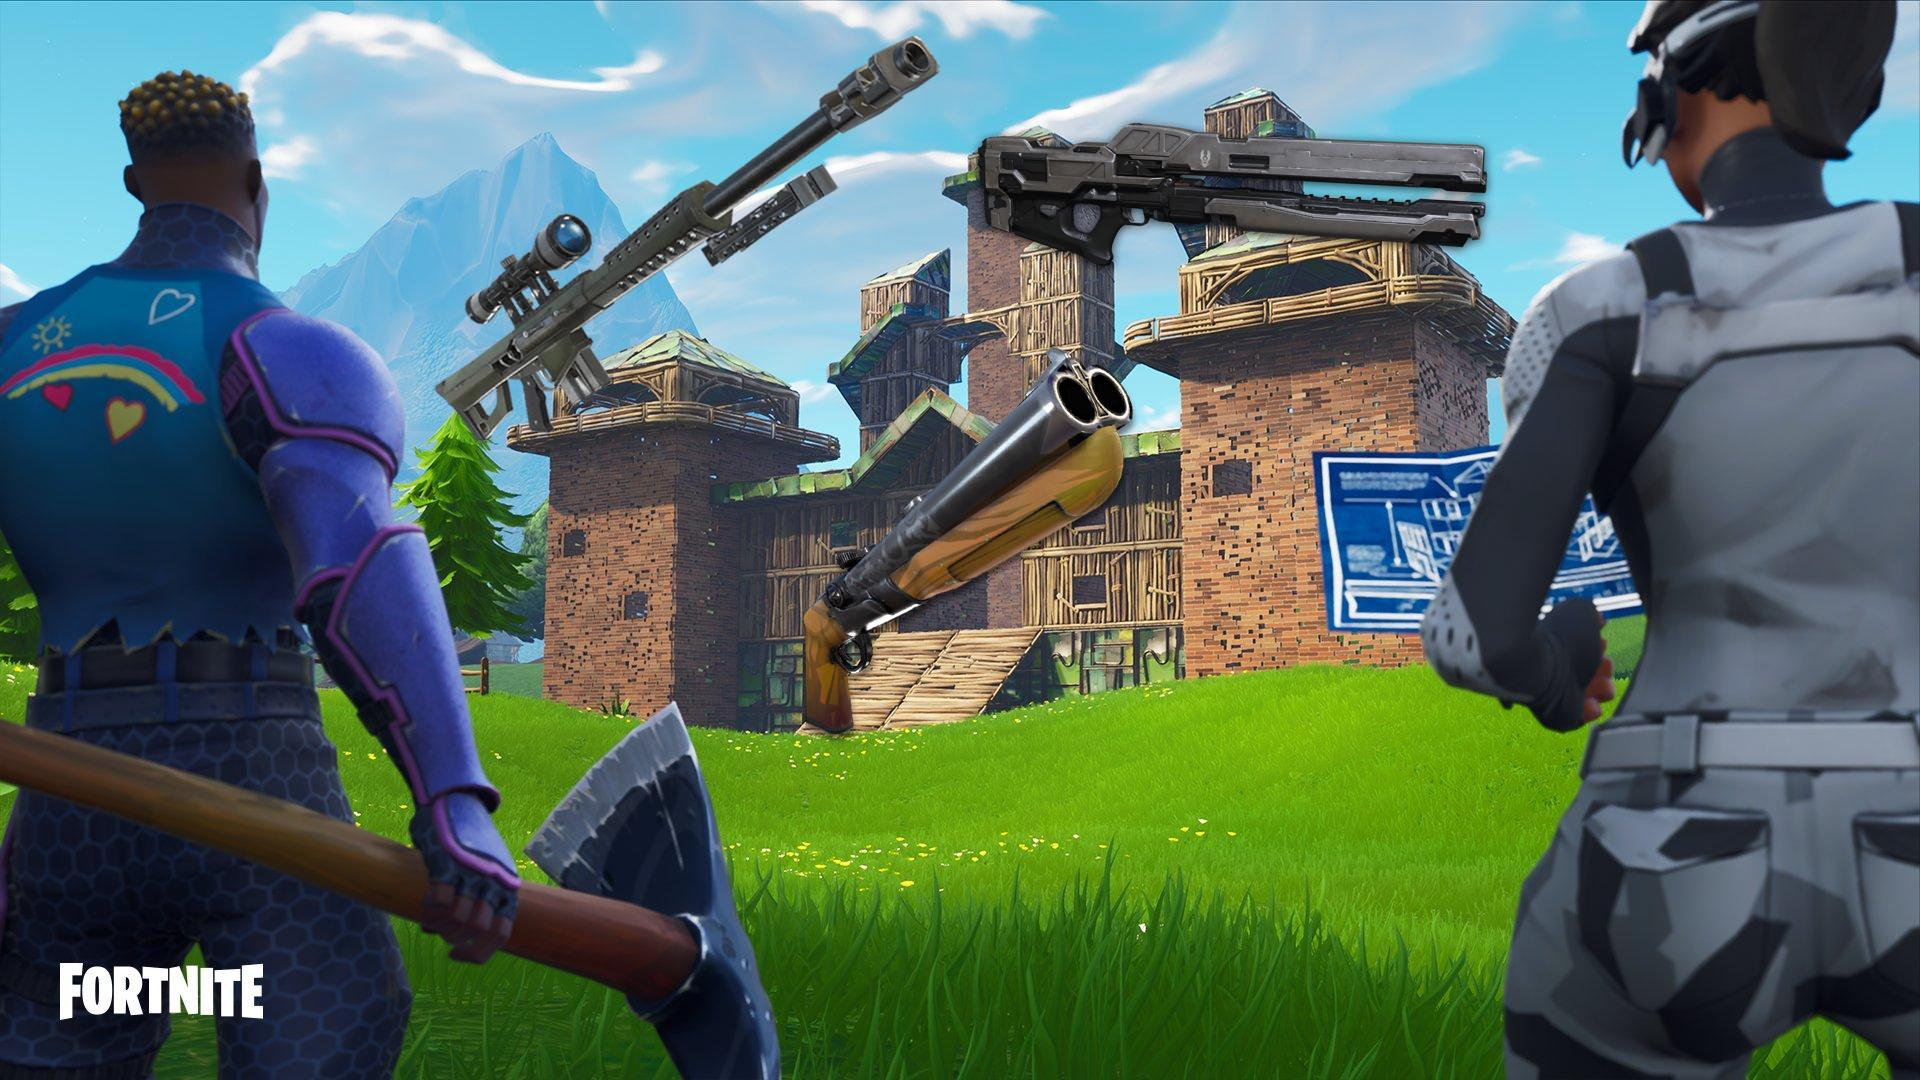 fortnite 5 2 update could have a break barrel shotgun and two new snipers but when are they coming - when is the next fortnite update coming out